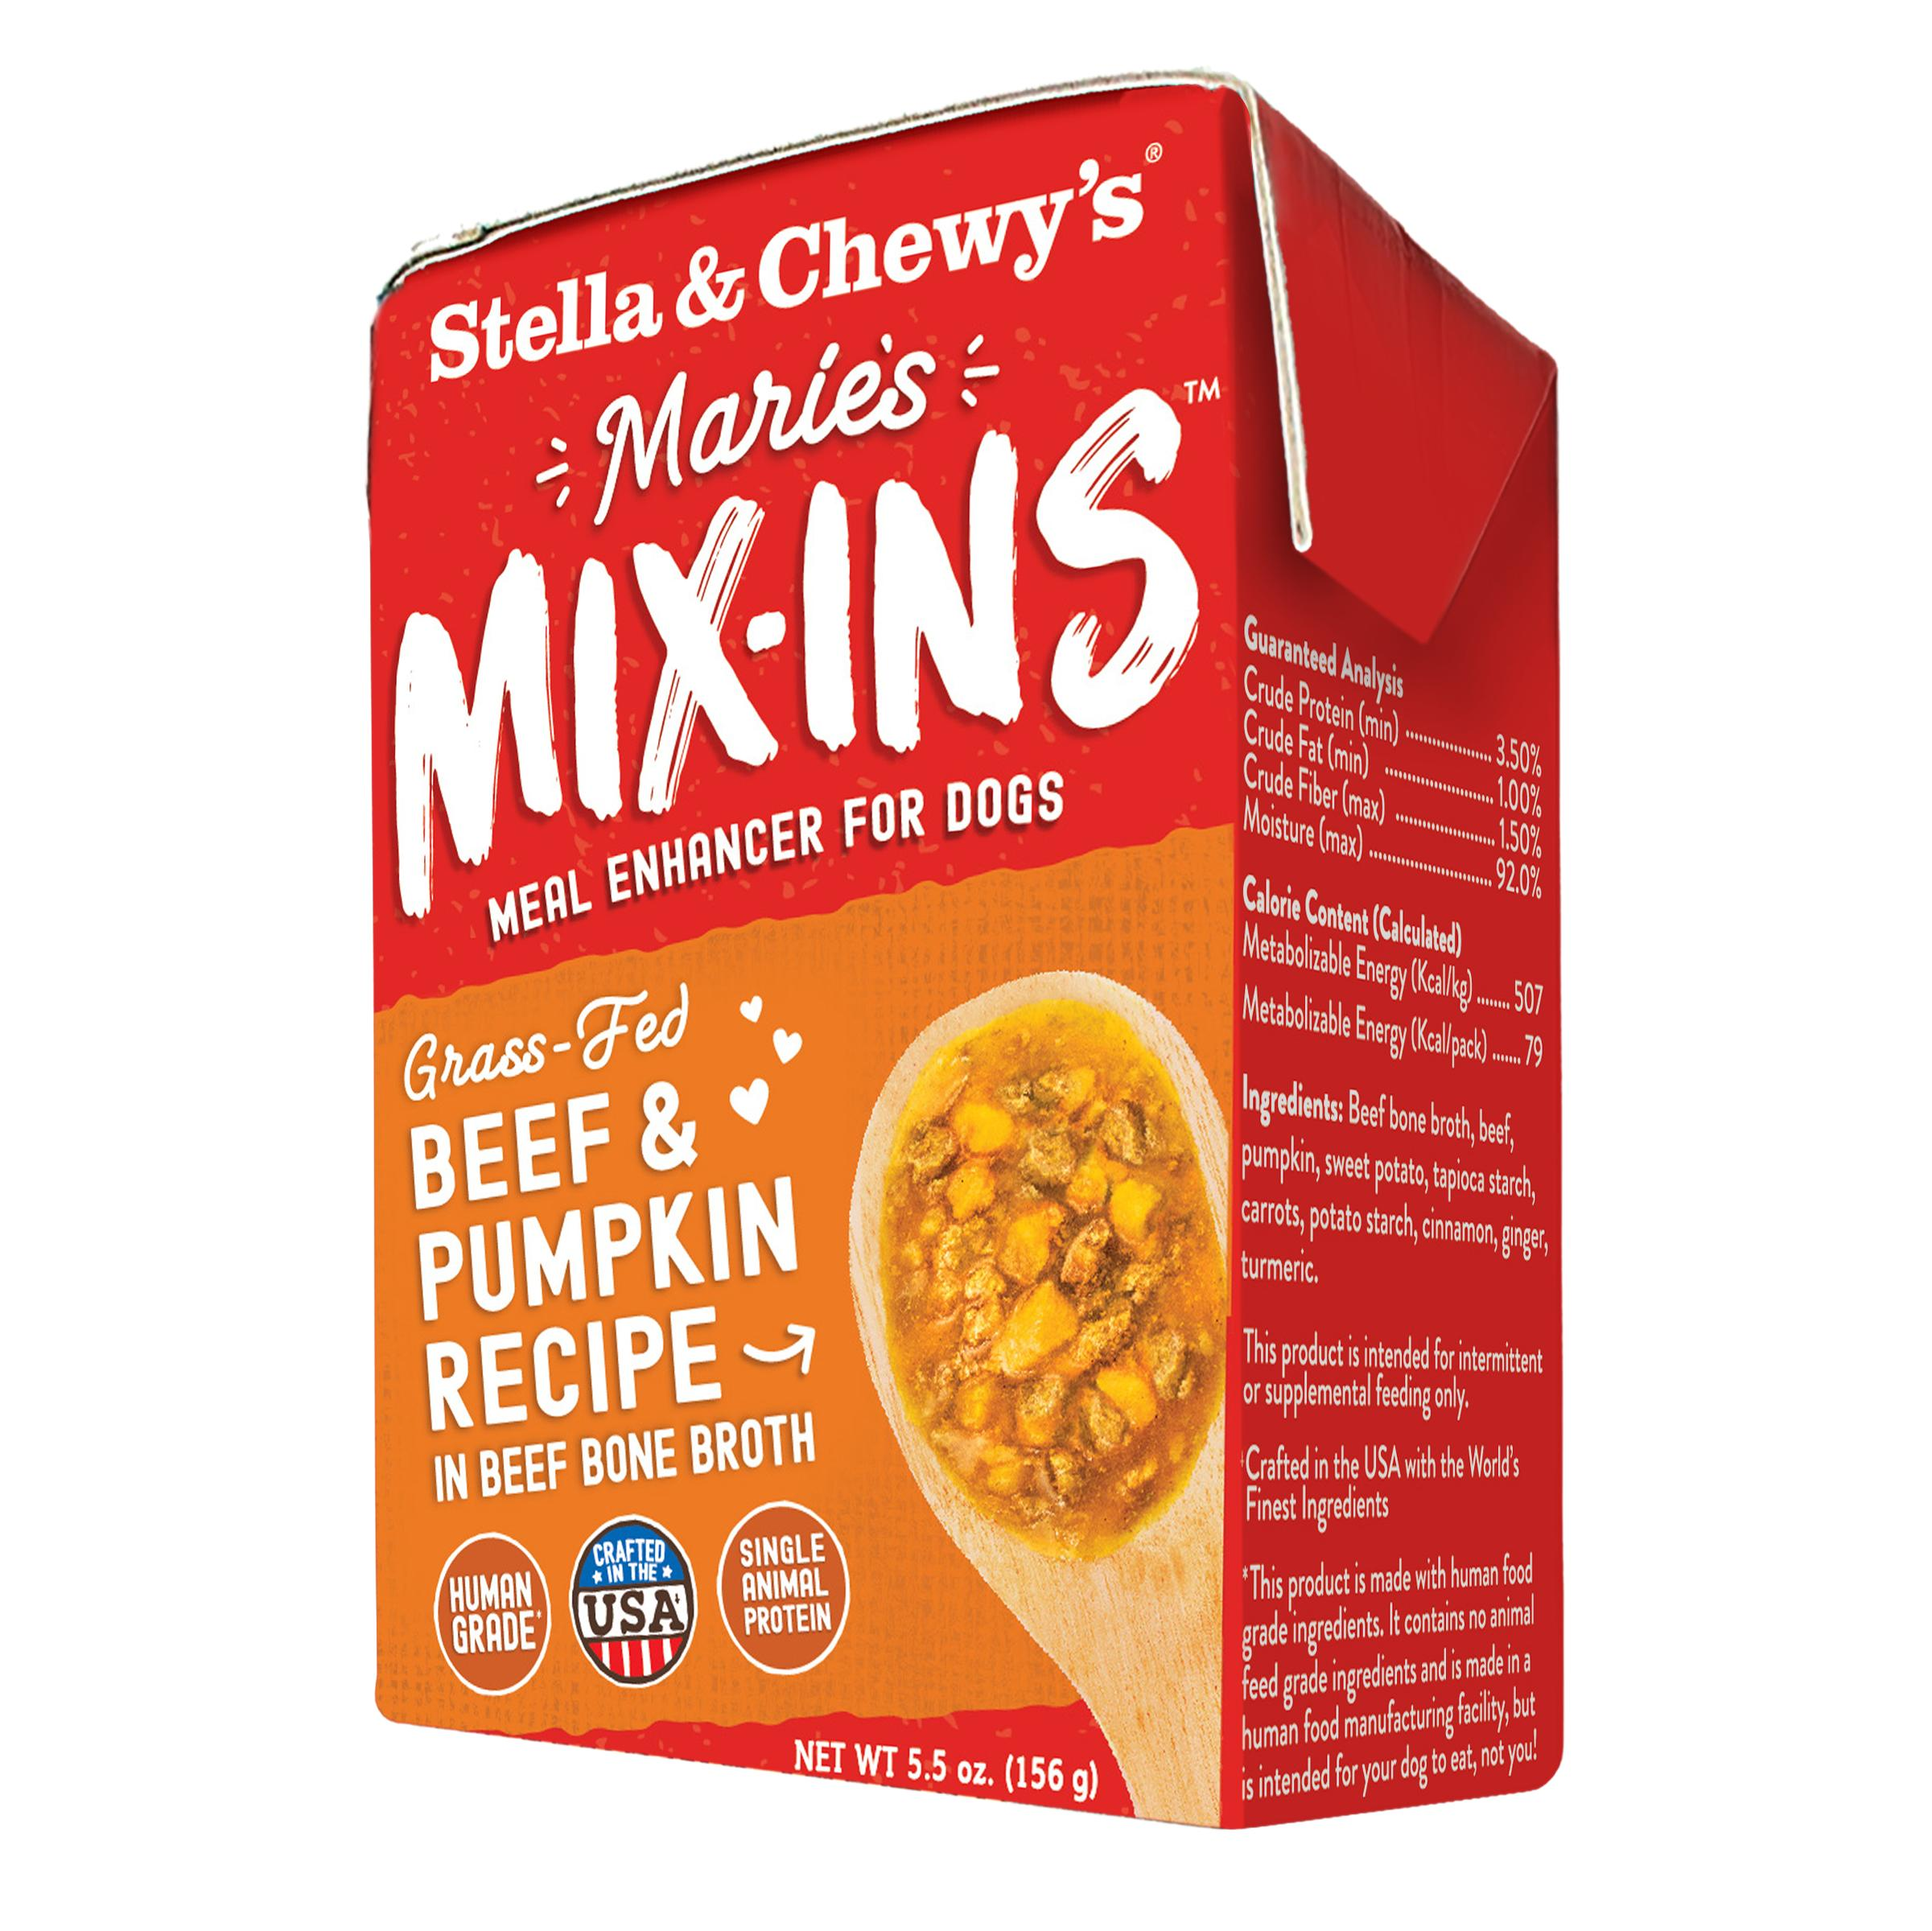 Stella & Chewy's Marie's Mix-Ins Beef & Pumpkin Recipe Meal Enhancer for Dogs Image